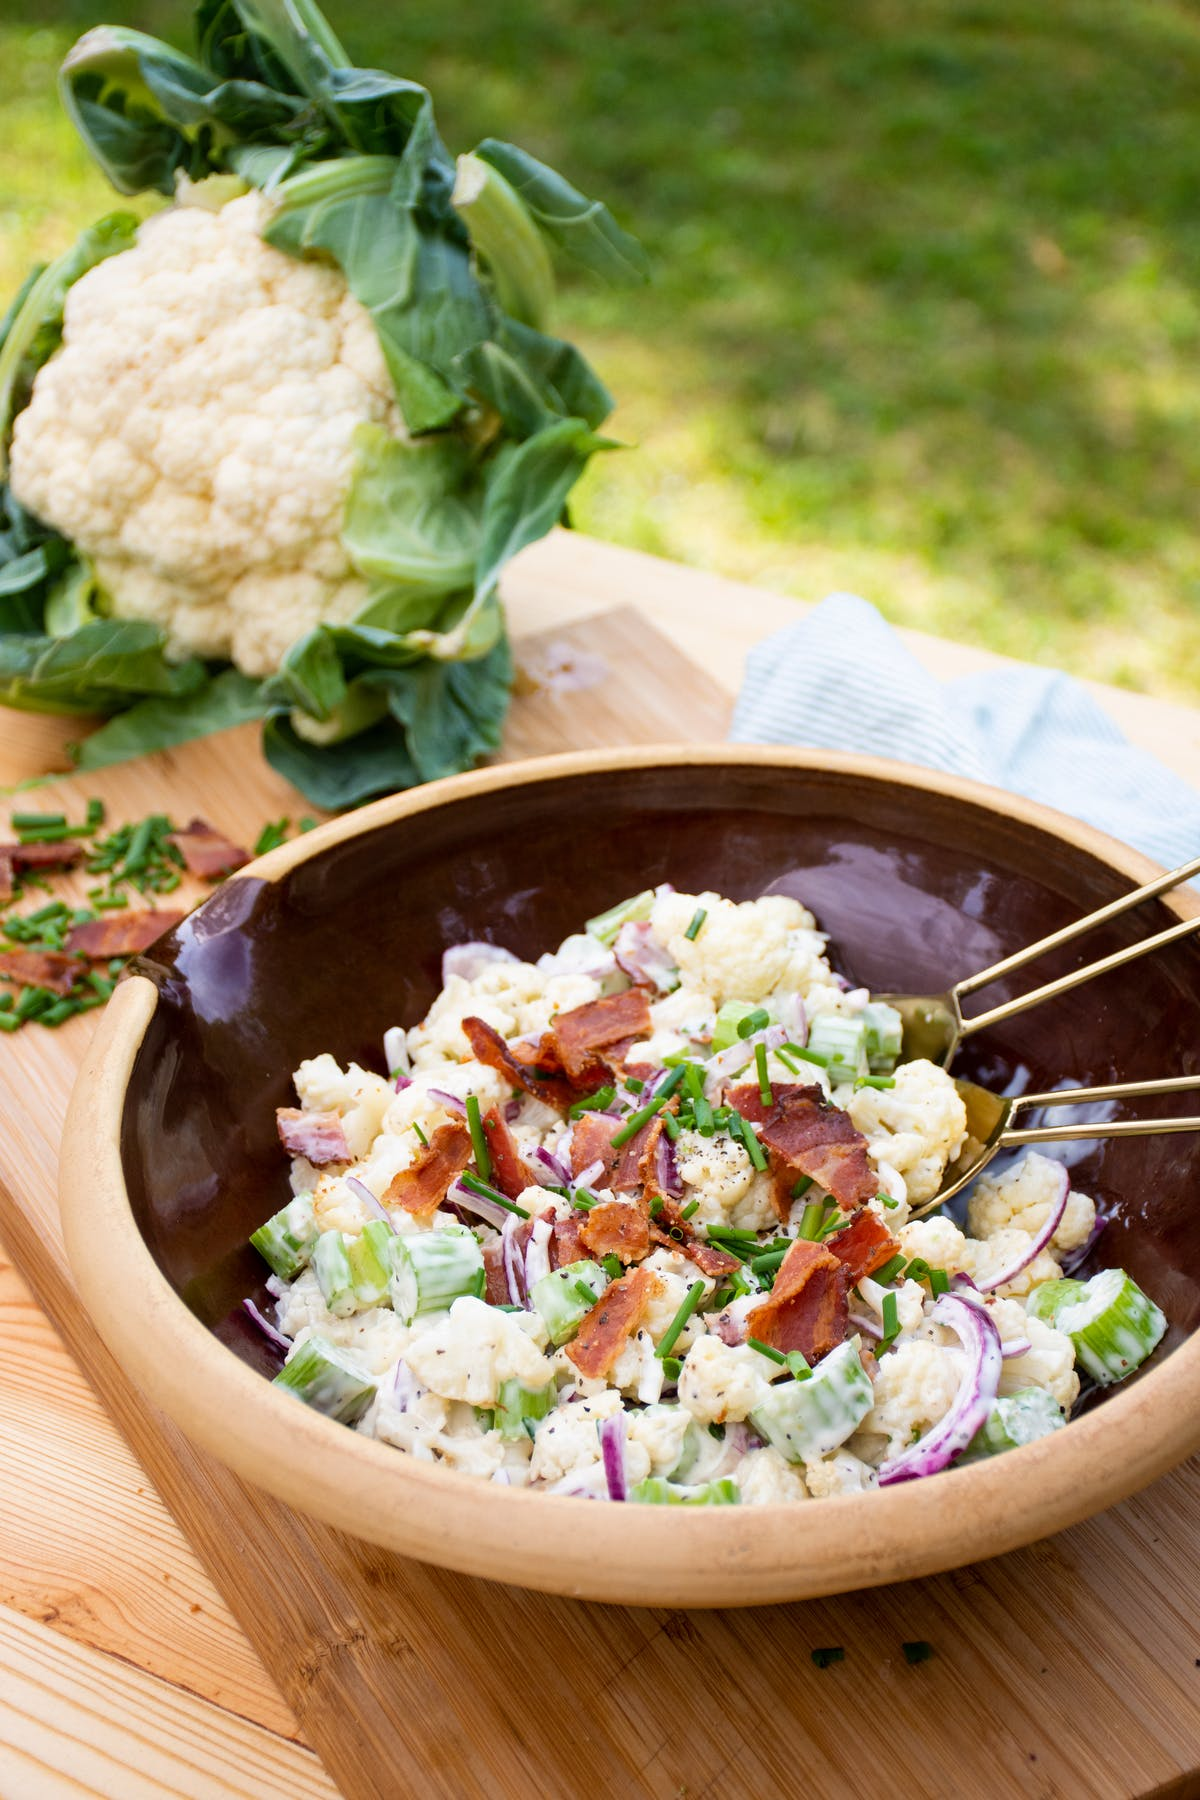 Keto cauliflower 'potato' salad